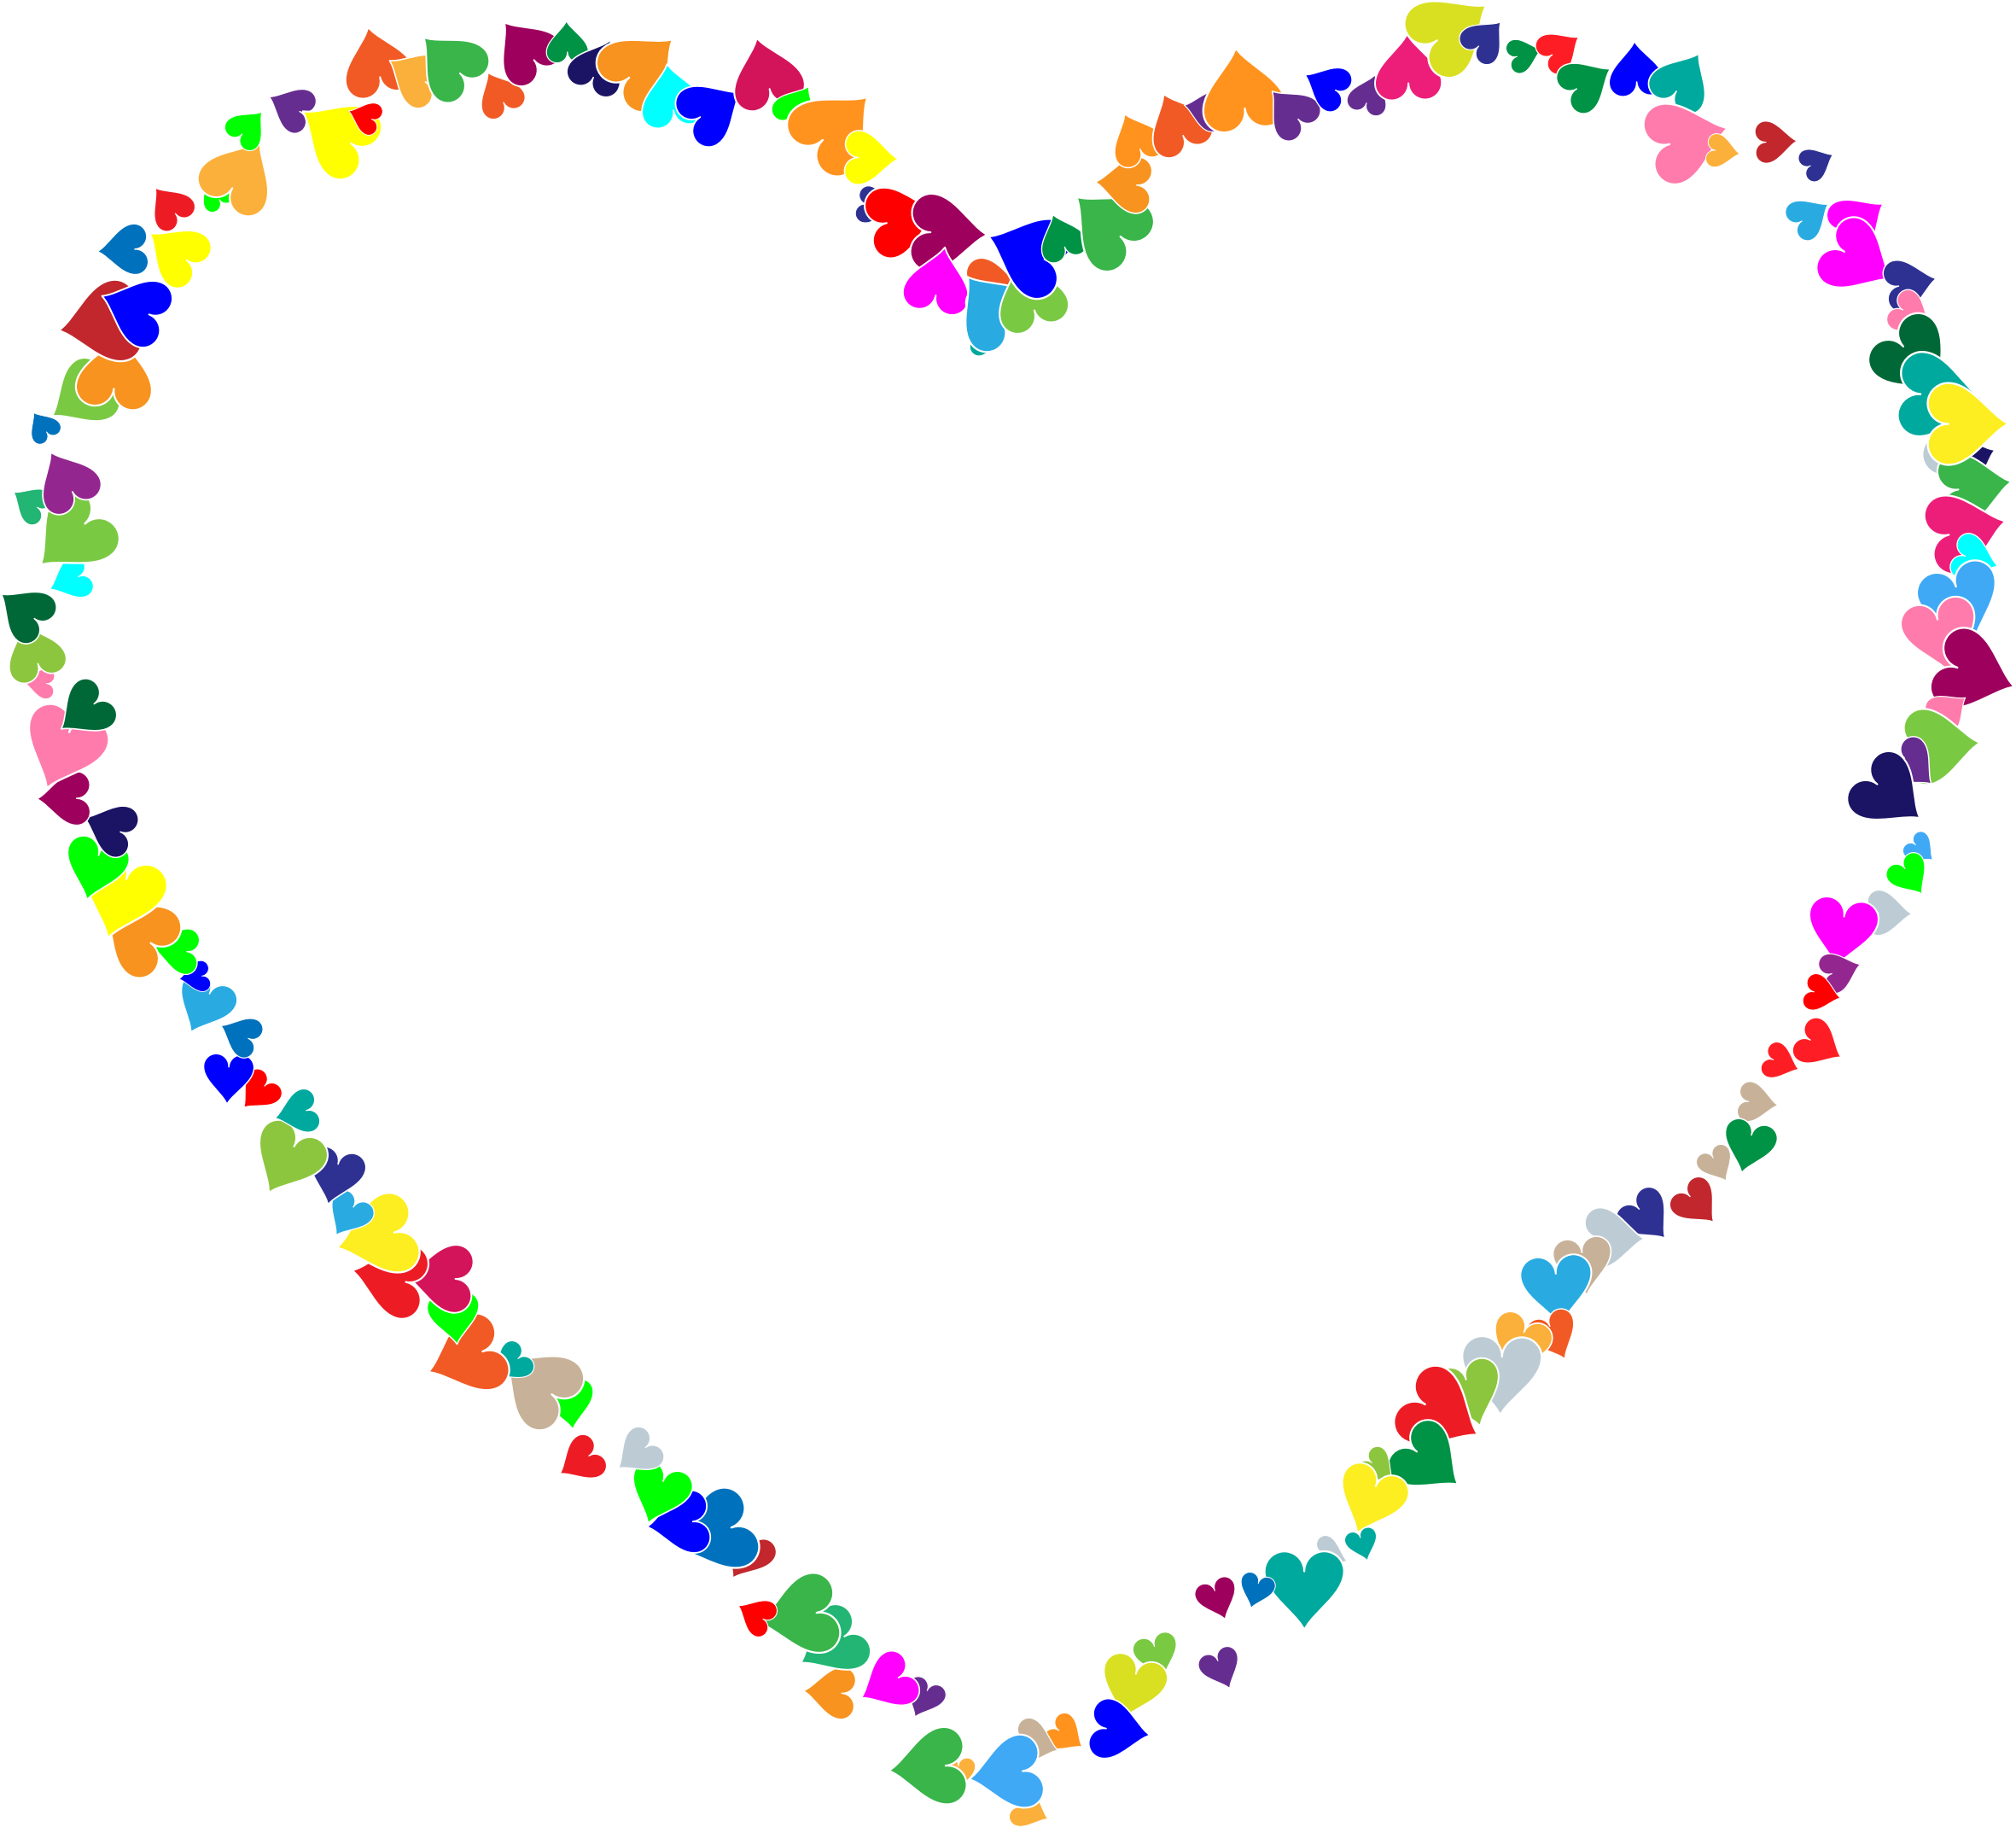 Heart frame clipart png transparent library Clipart - Colorful Hearts Frame png transparent library